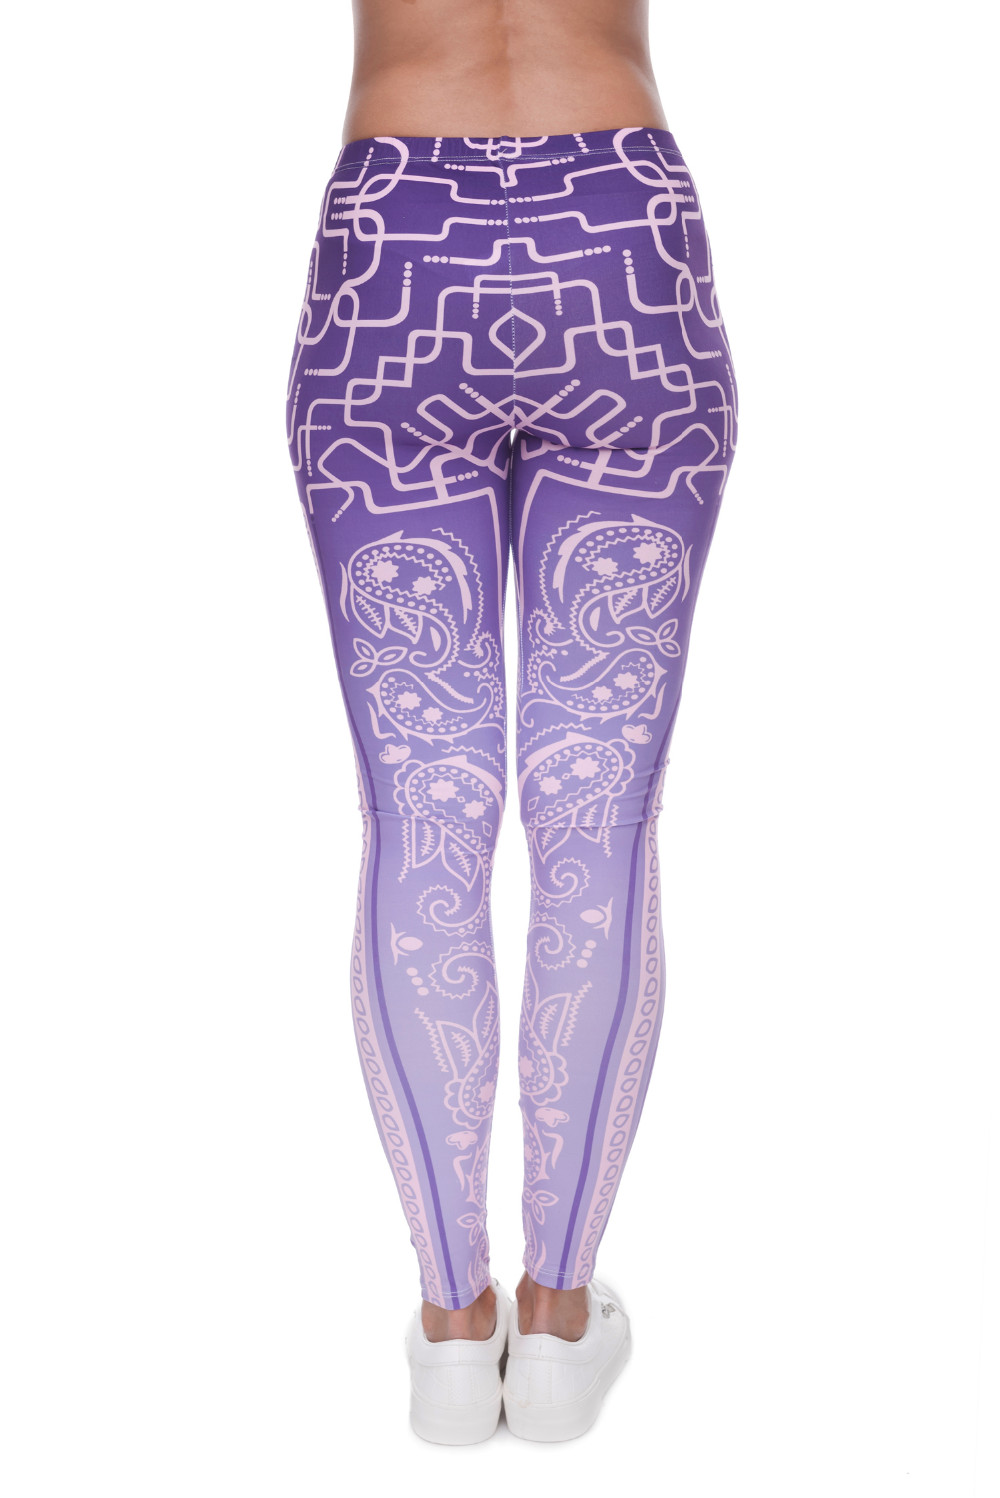 40541 bandana deco purple (5)